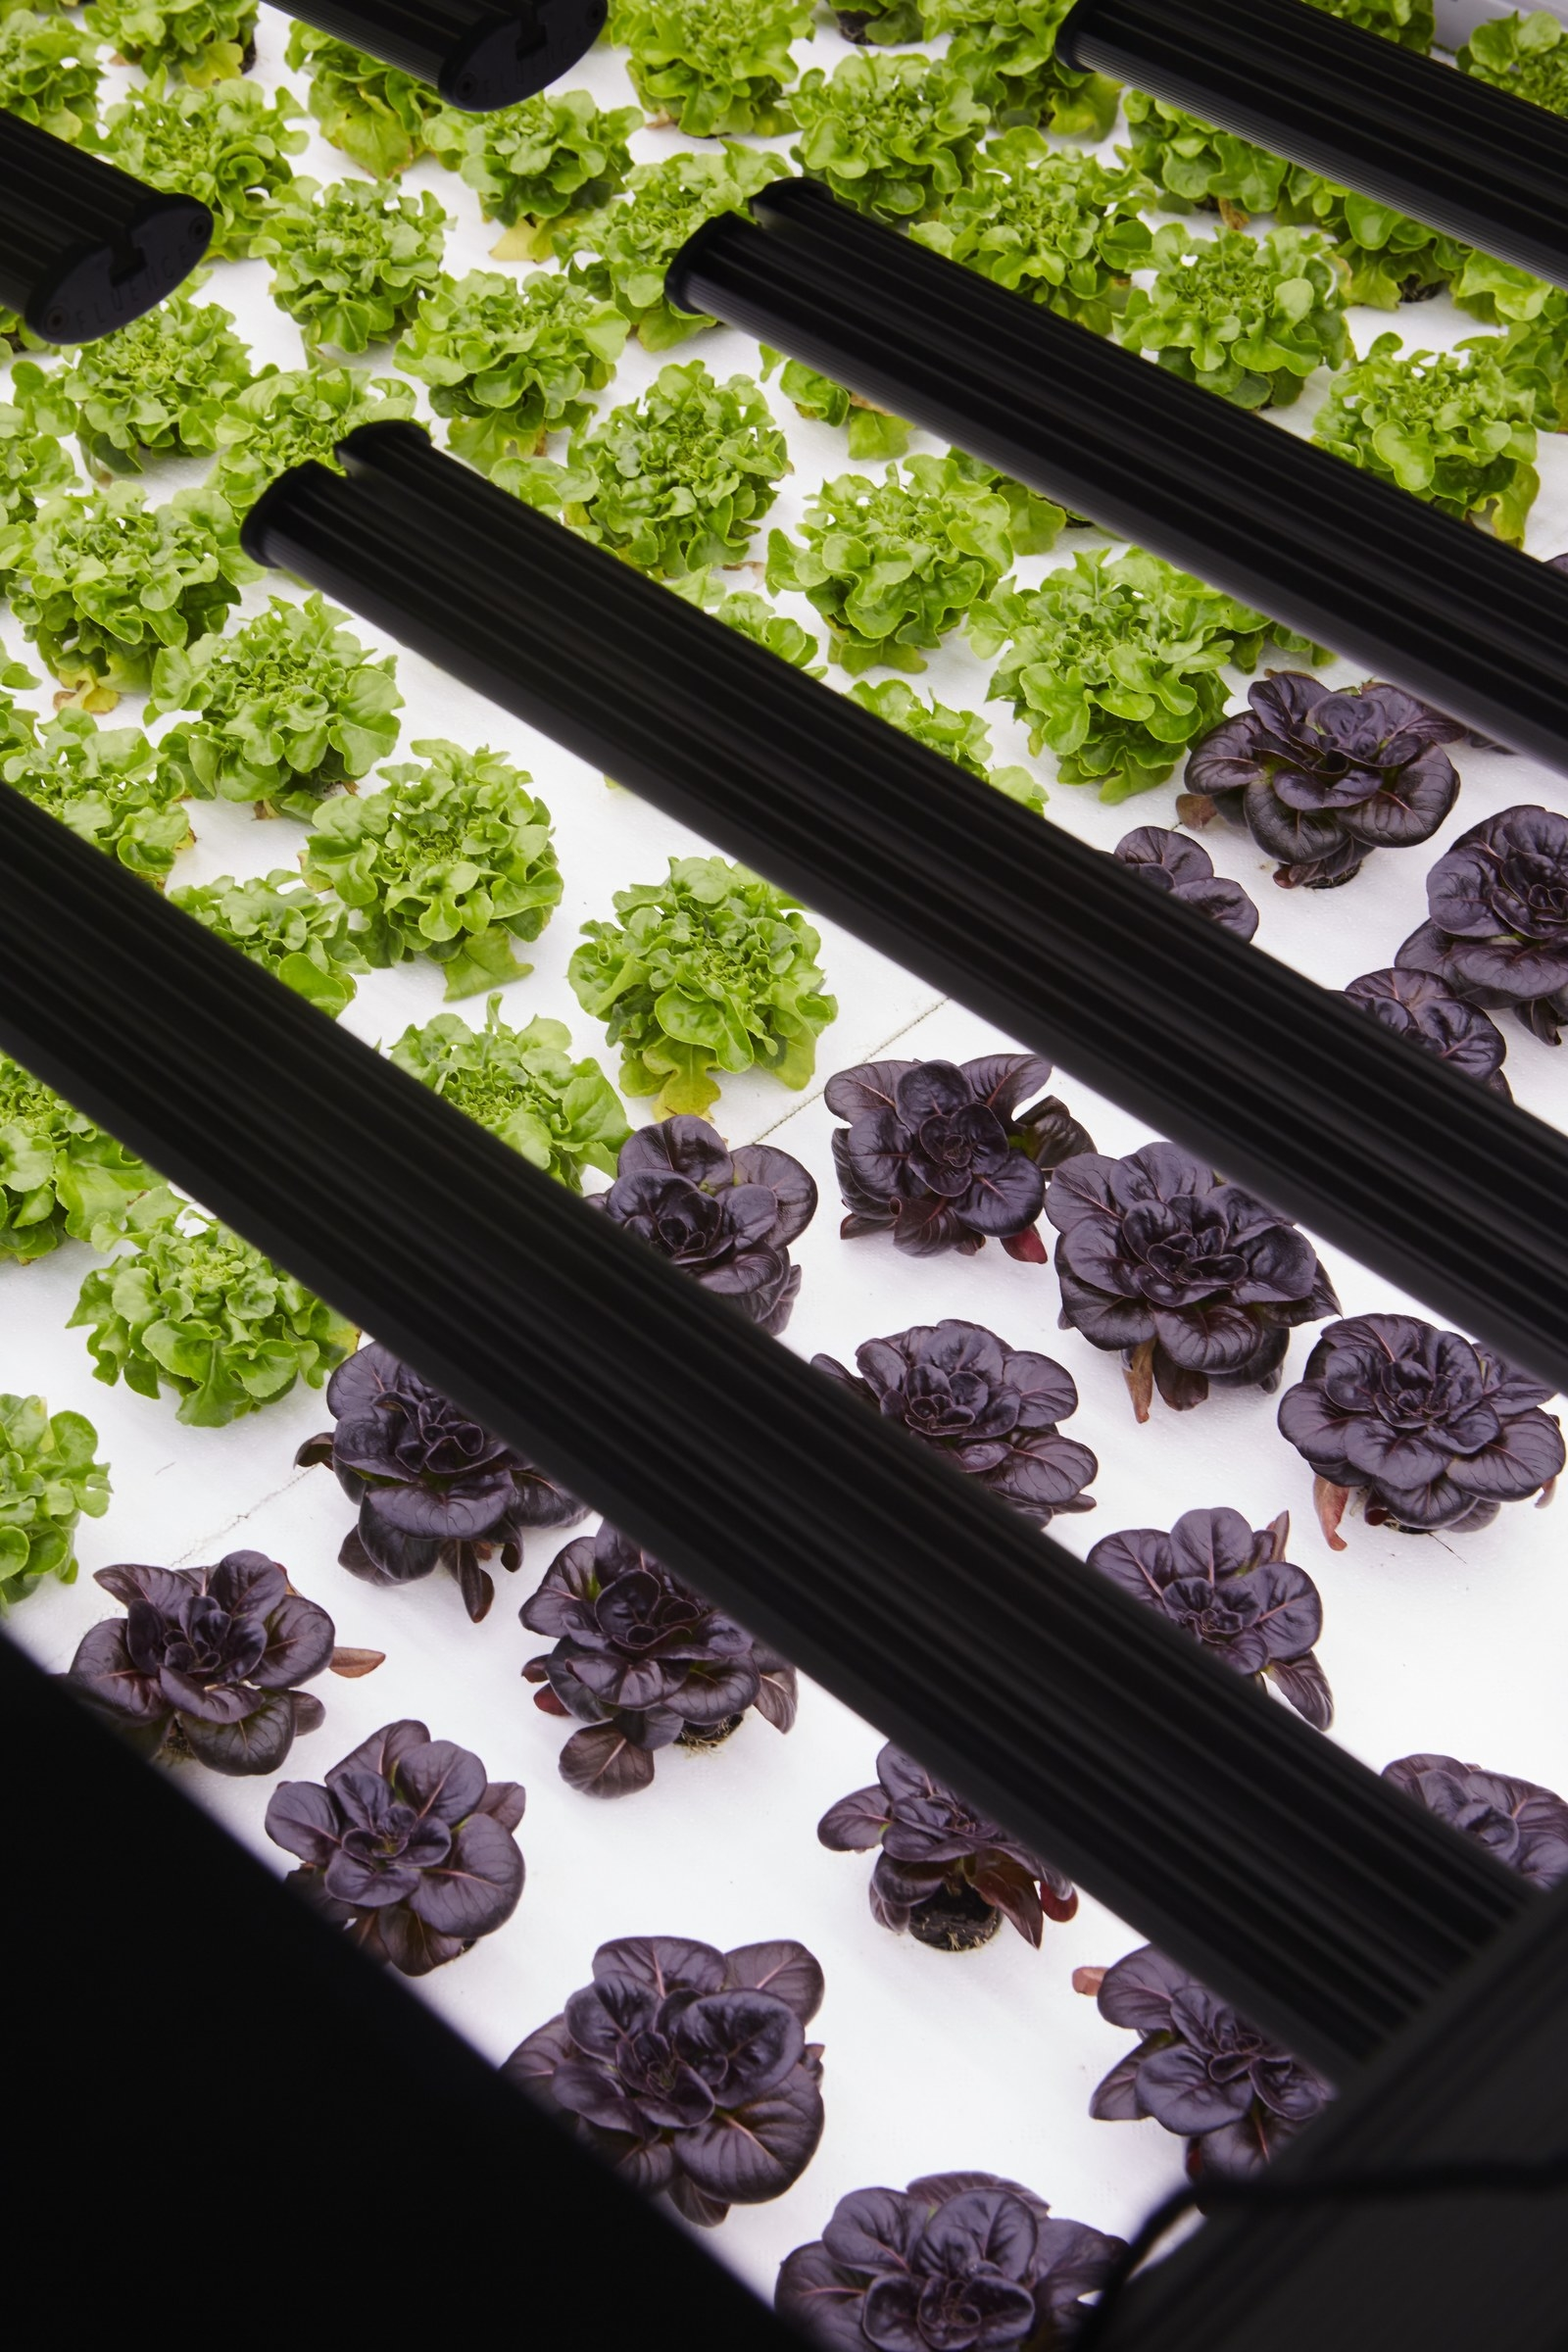 Inside The Computerized Lettuce Factory Of The Future